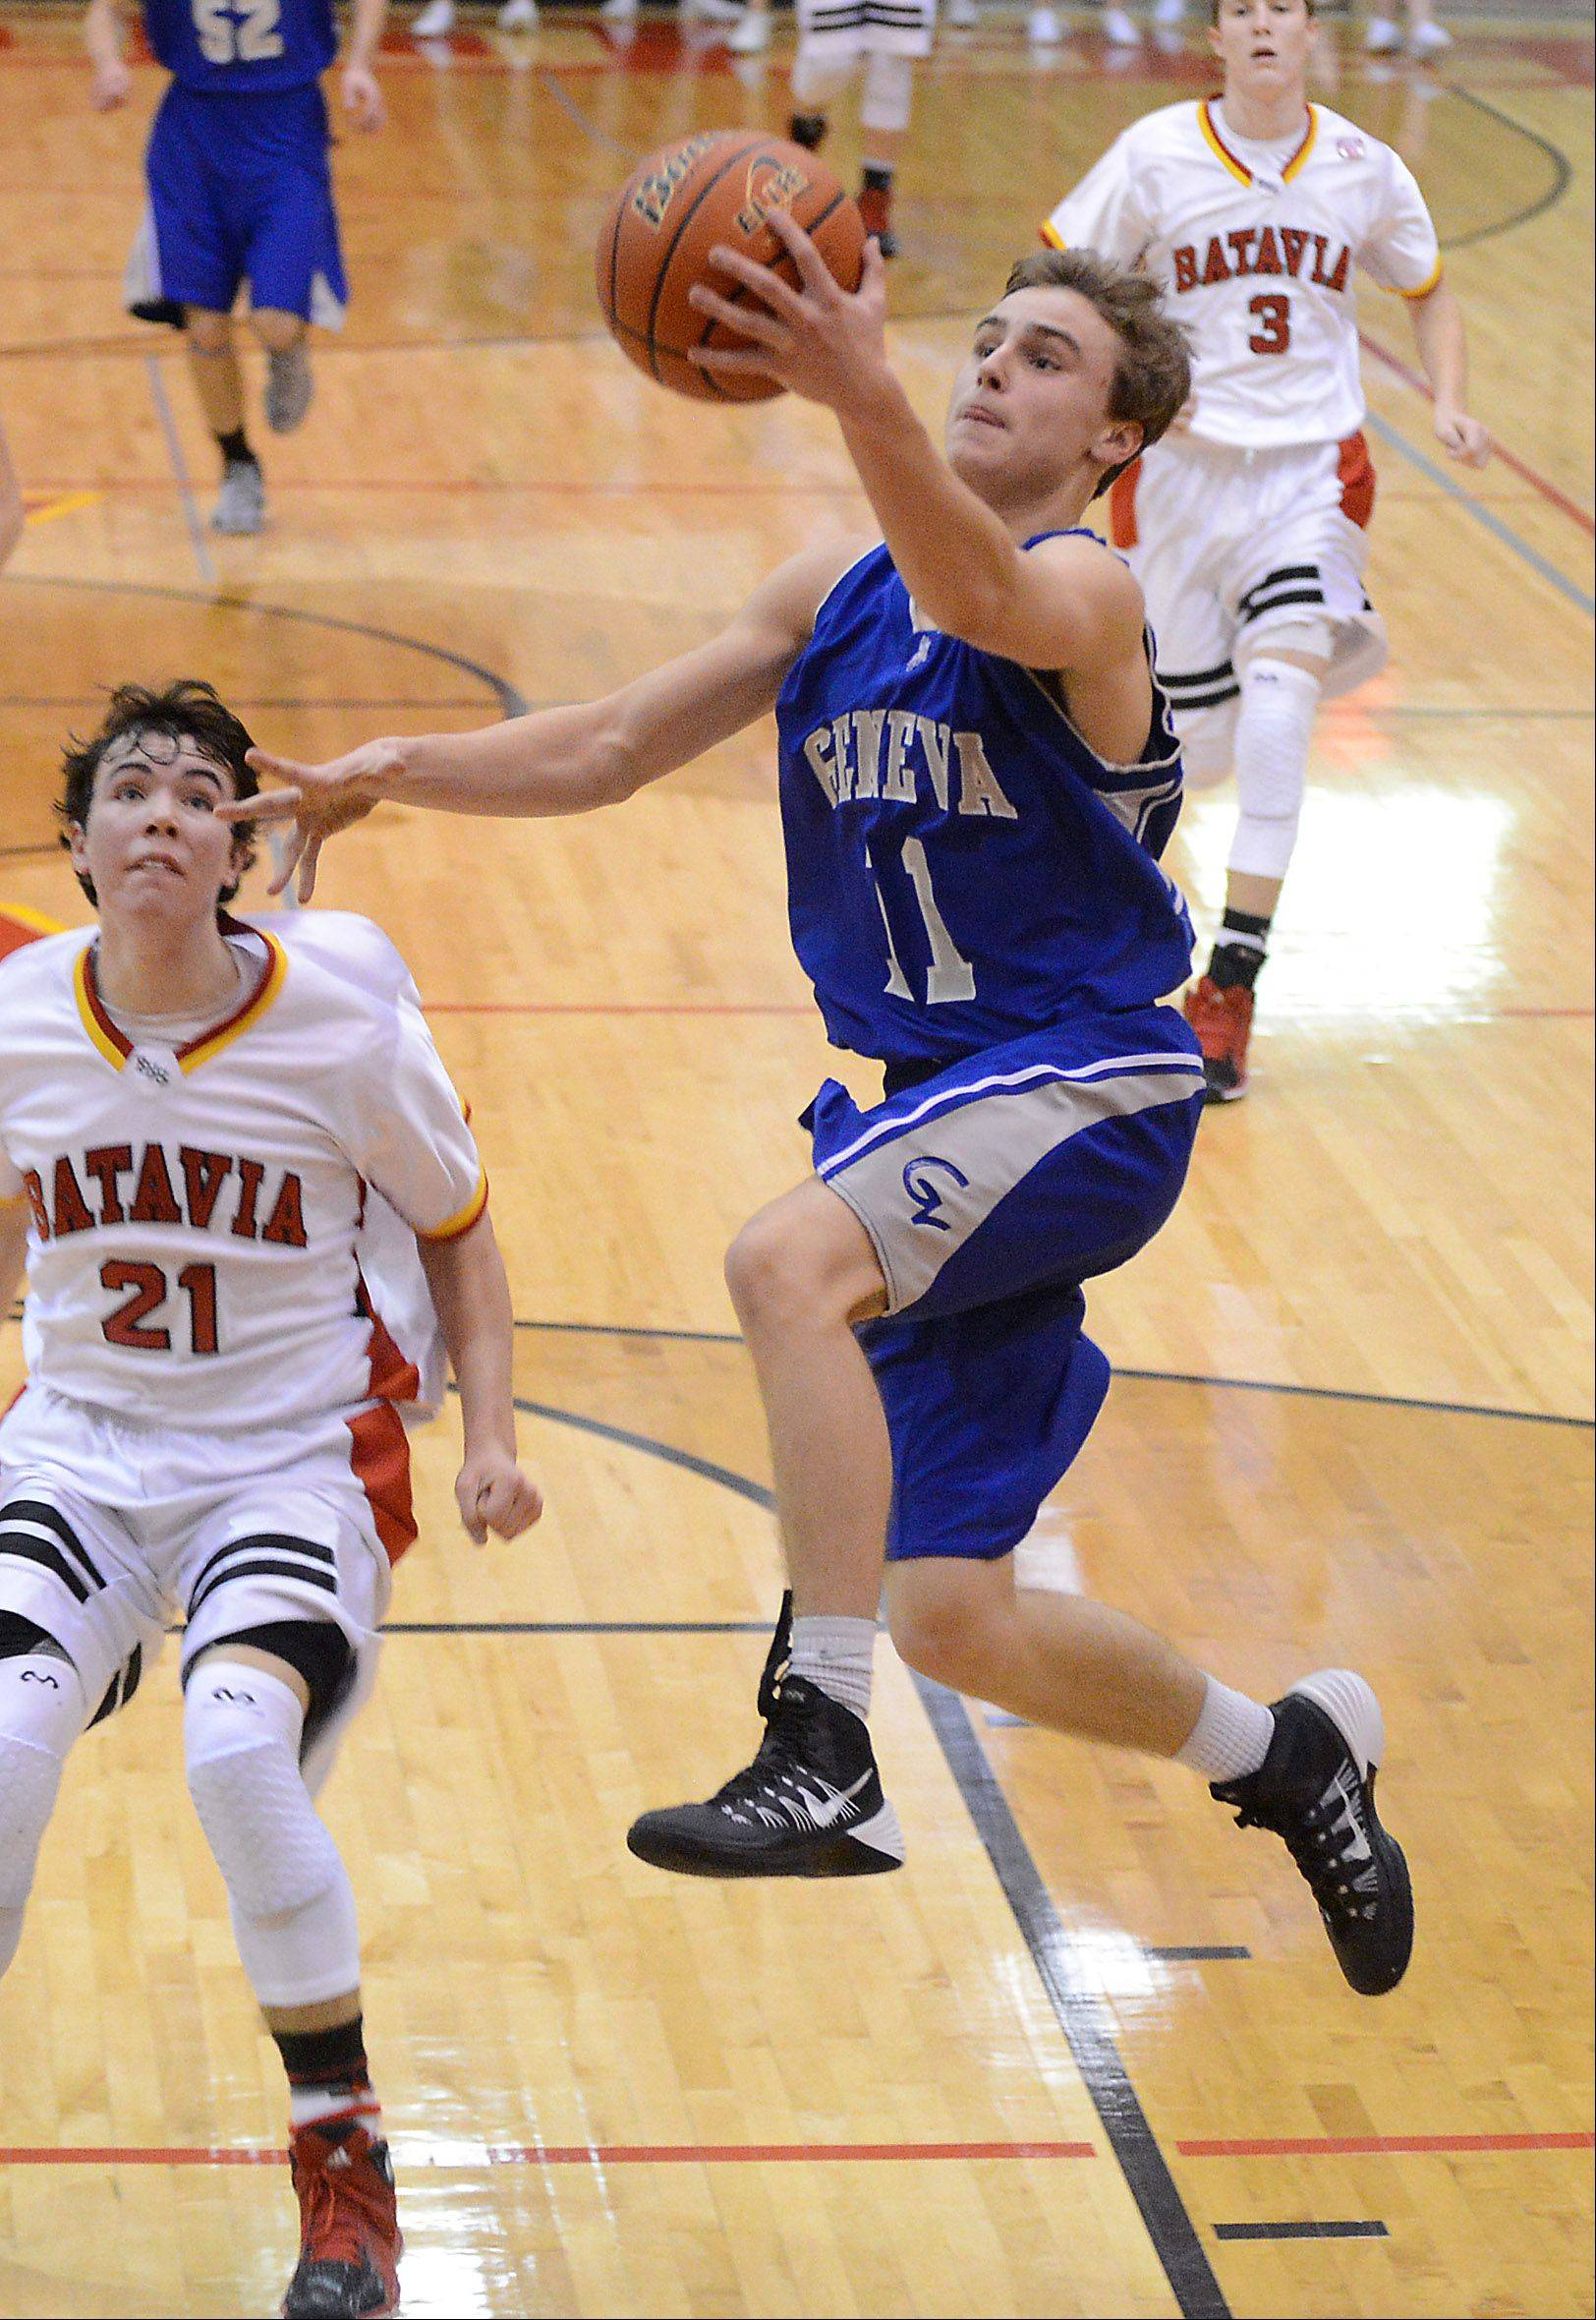 Geneva's Cam Cook (11) drives to the basket past Batavia's Jeremy Schoessling (21) during Friday's game in Batavia.